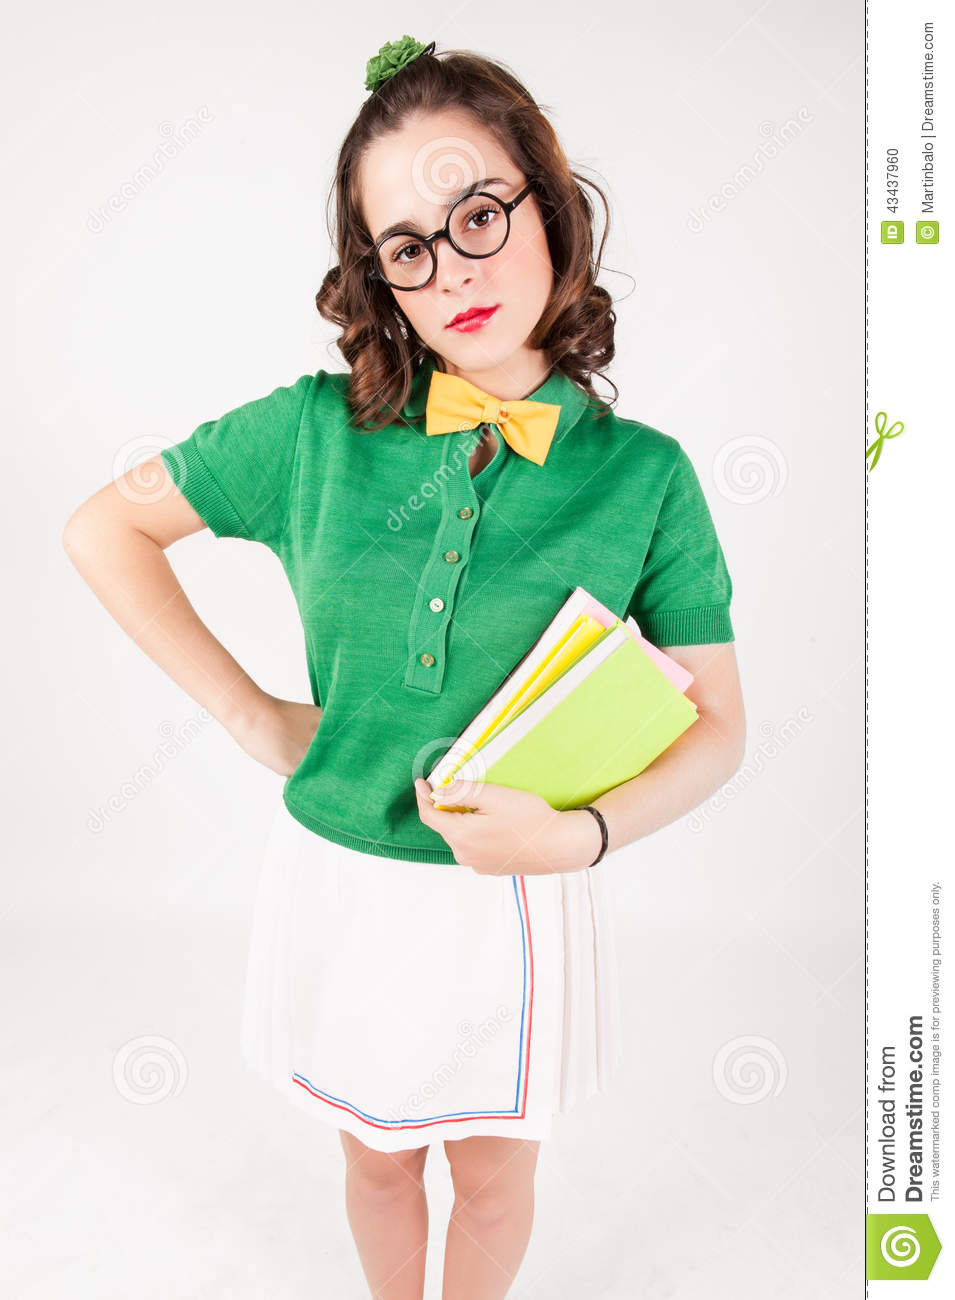 Nerdy Girl Holding Books Looking At Camera Stock Photo -9239